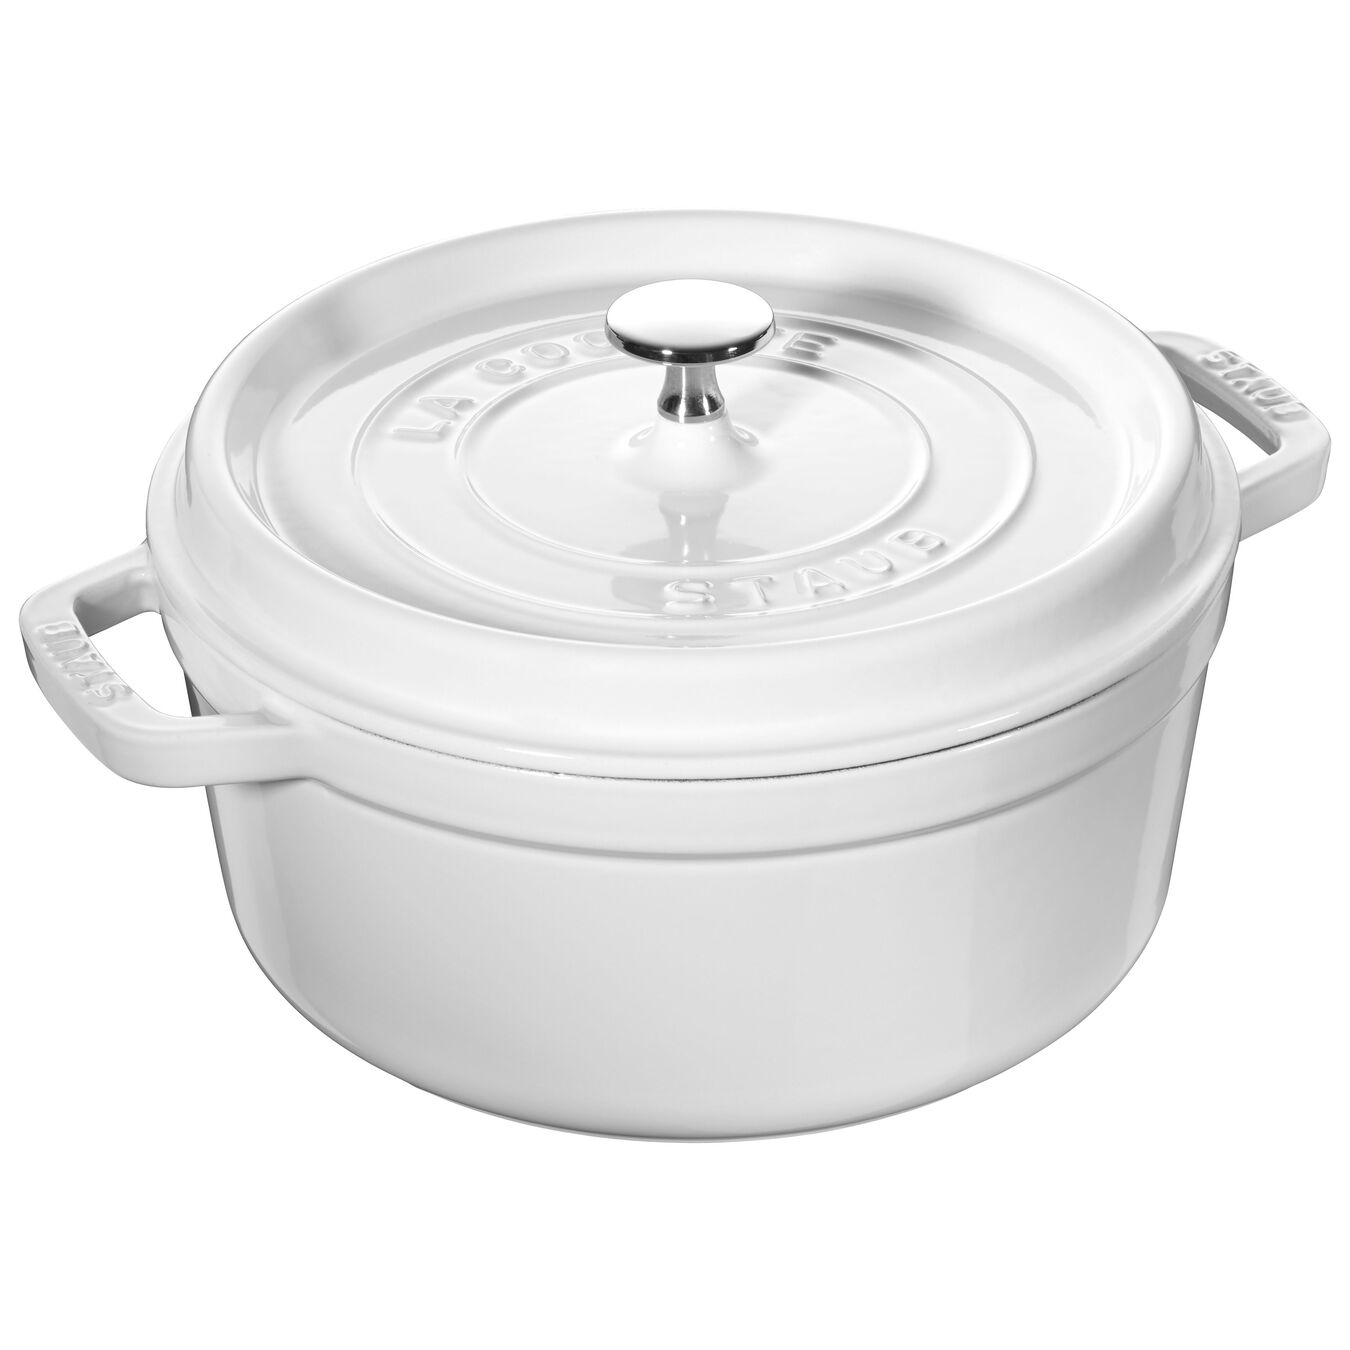 4-qt round cocotte - white - visual imperfections,,large 1